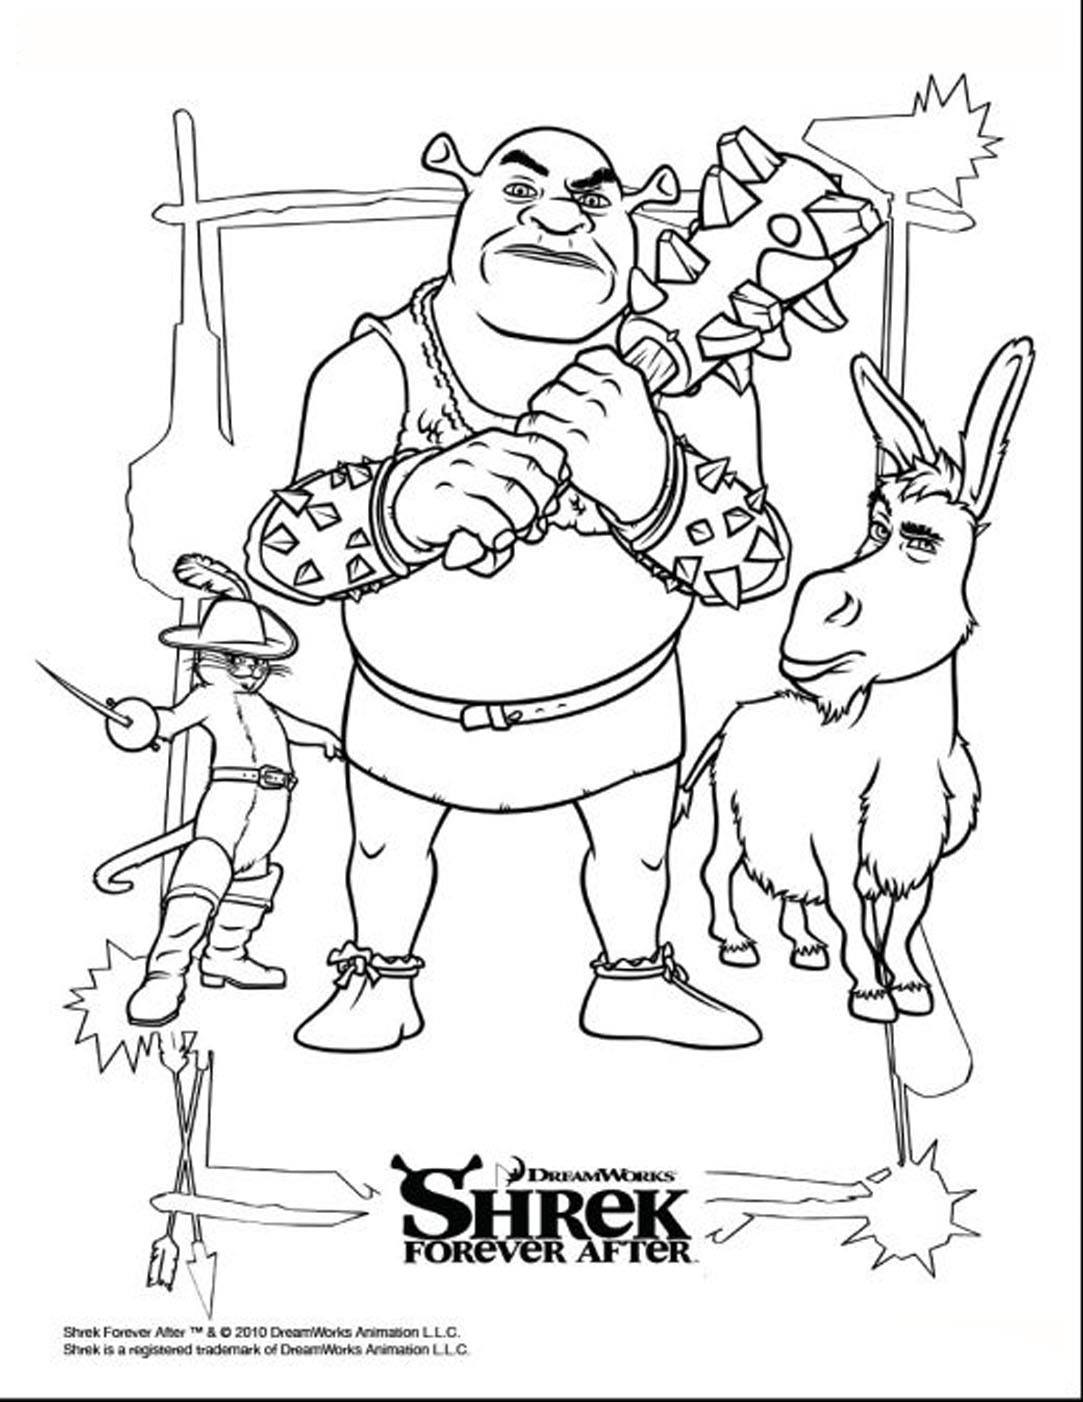 Shrek coloring page to download